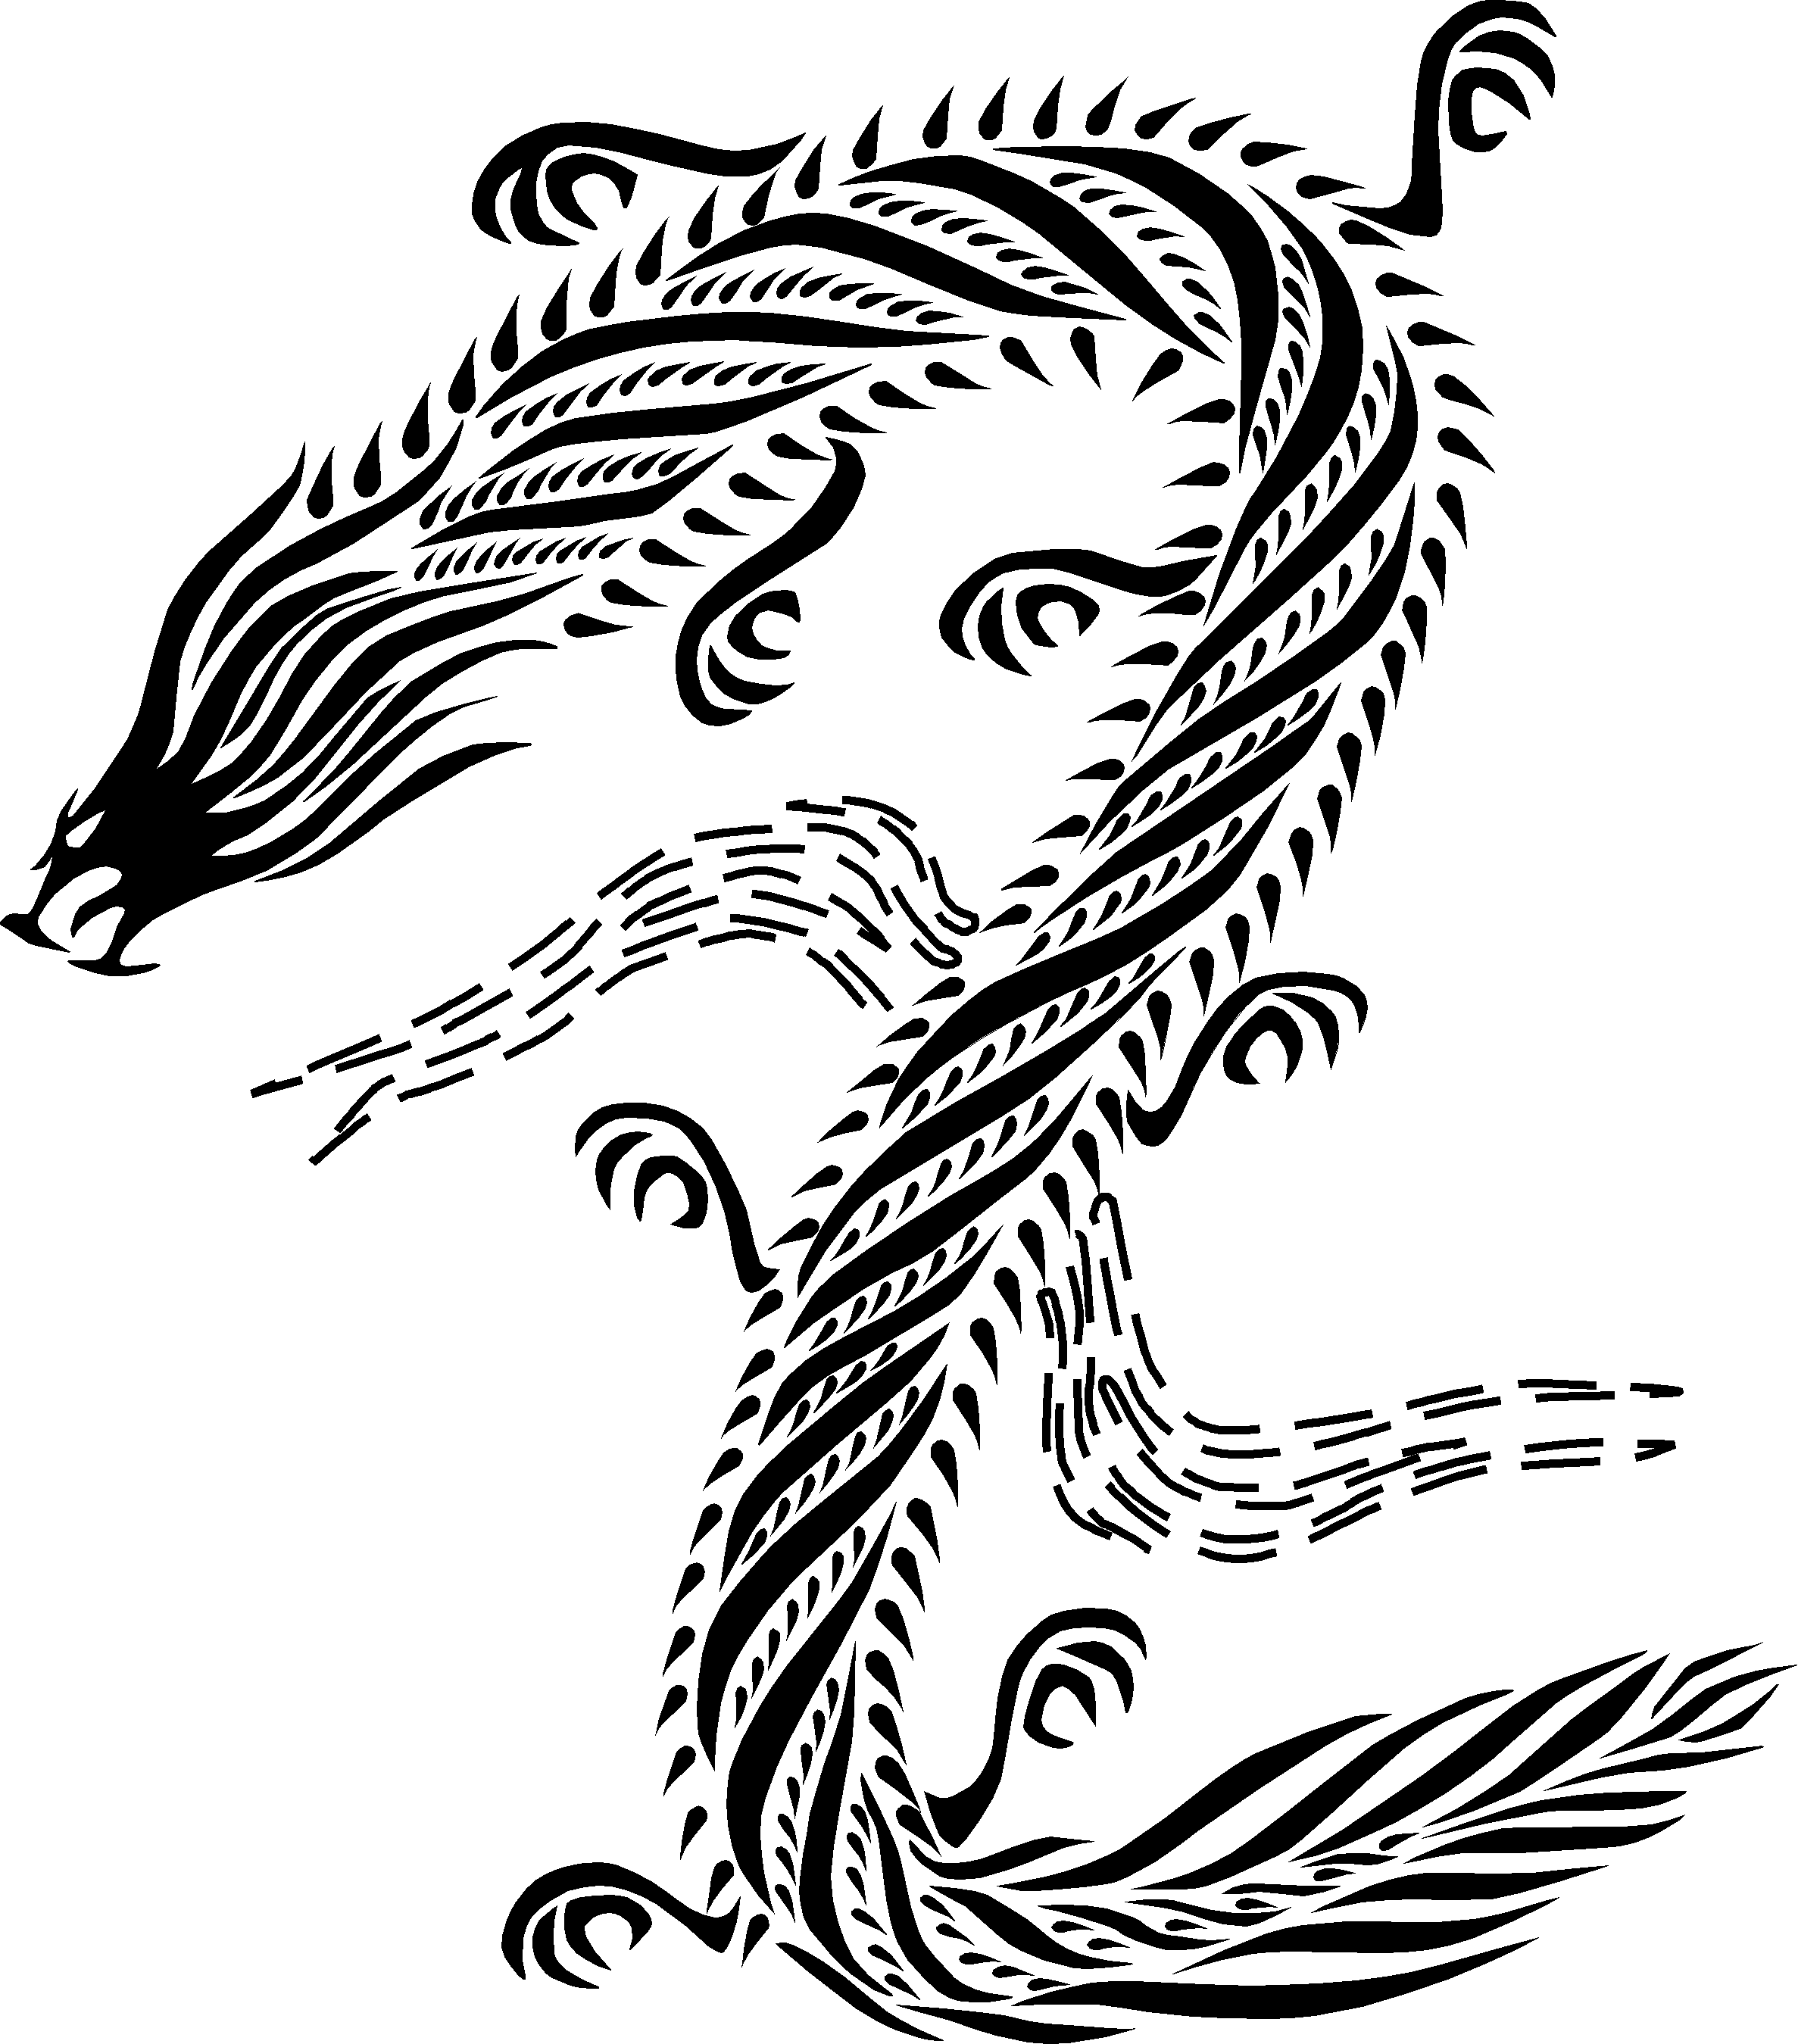 Free Chinese Dragon Images Black And White, Download Free Clip Art.